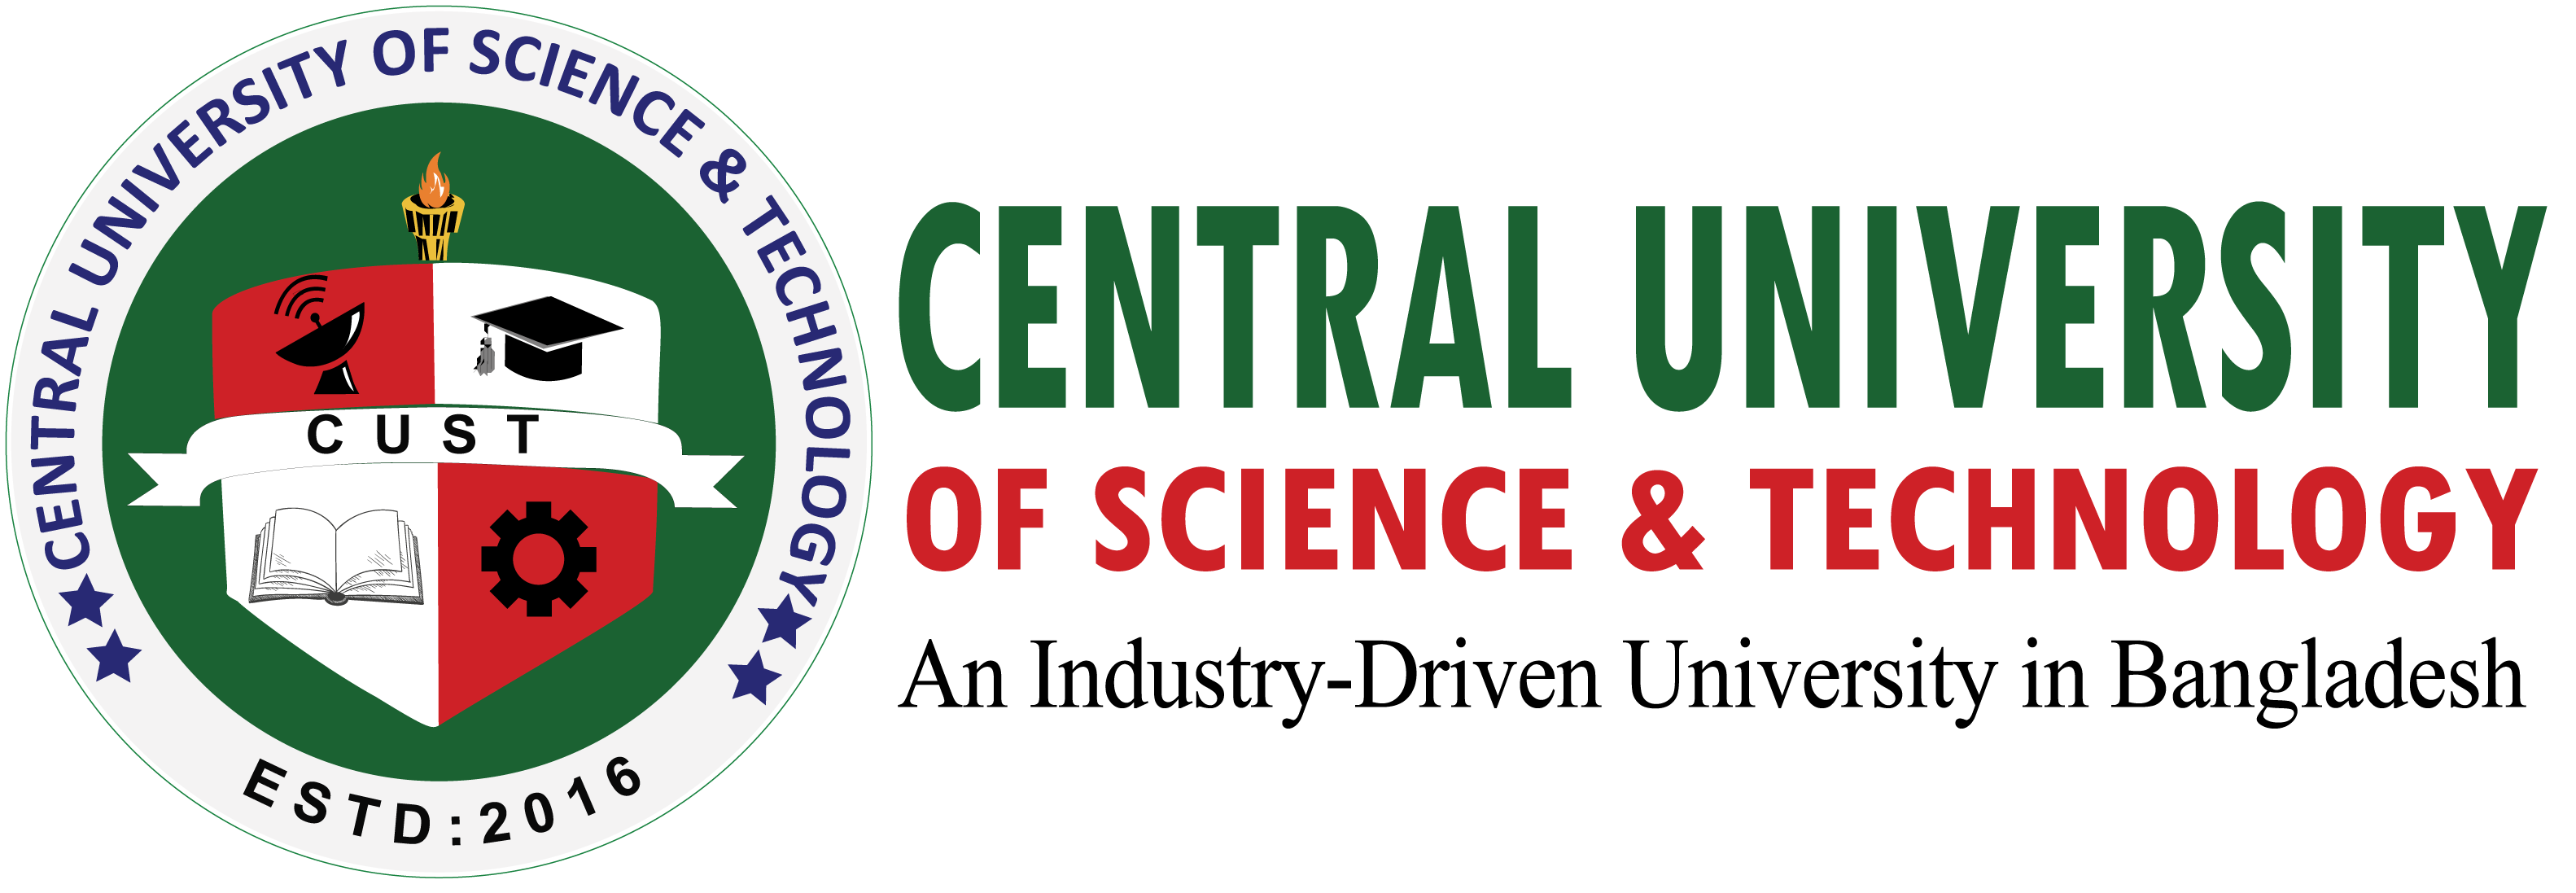 Advisory Board - Central University of Science & Technology